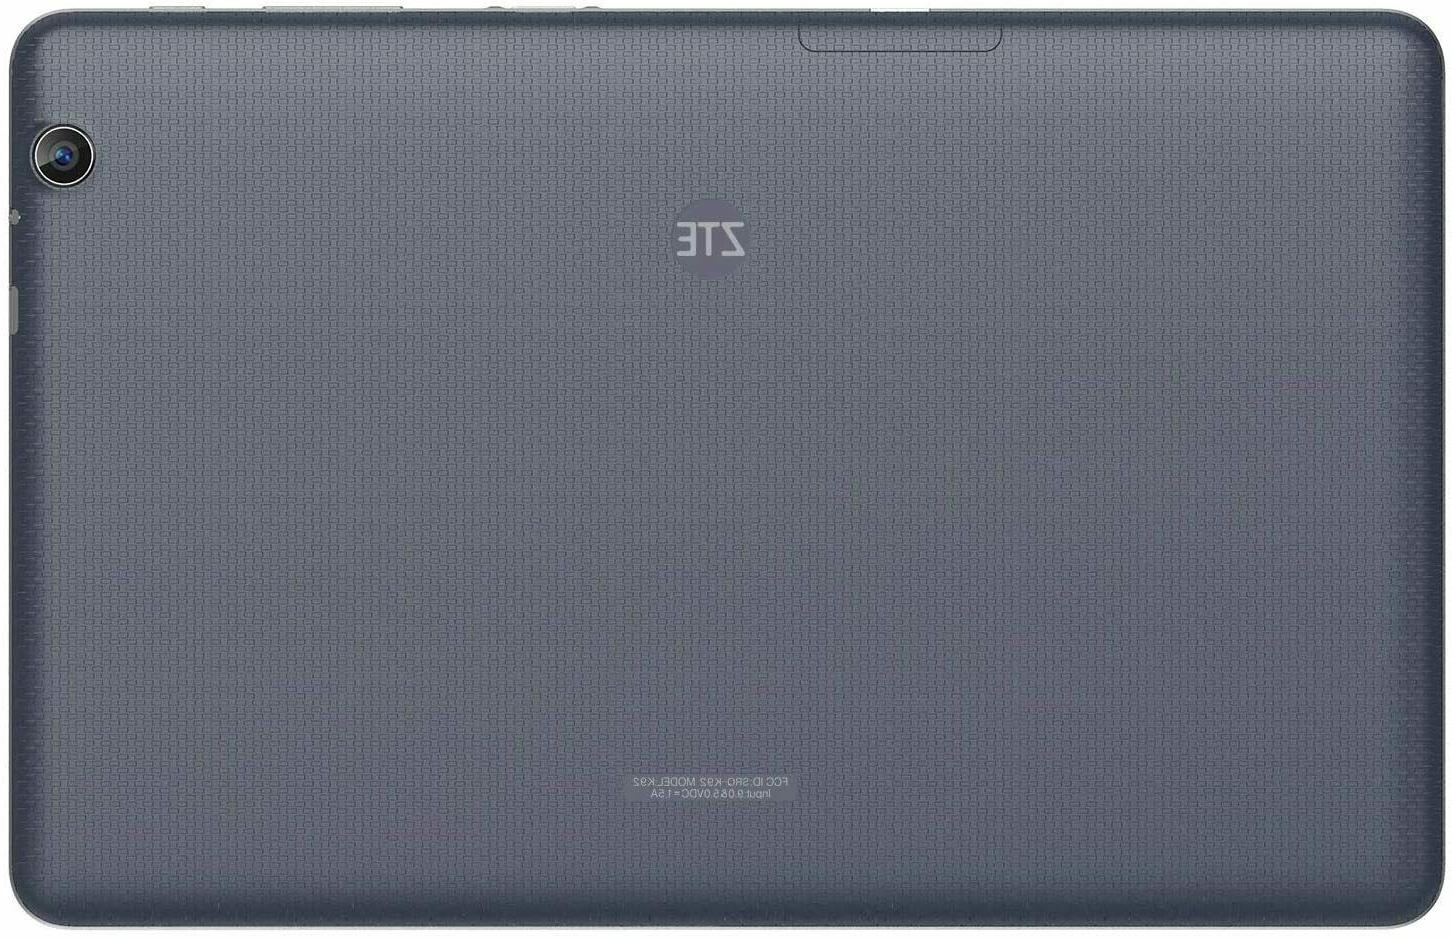 ZTE Wi-Fi Inch Android Tablet